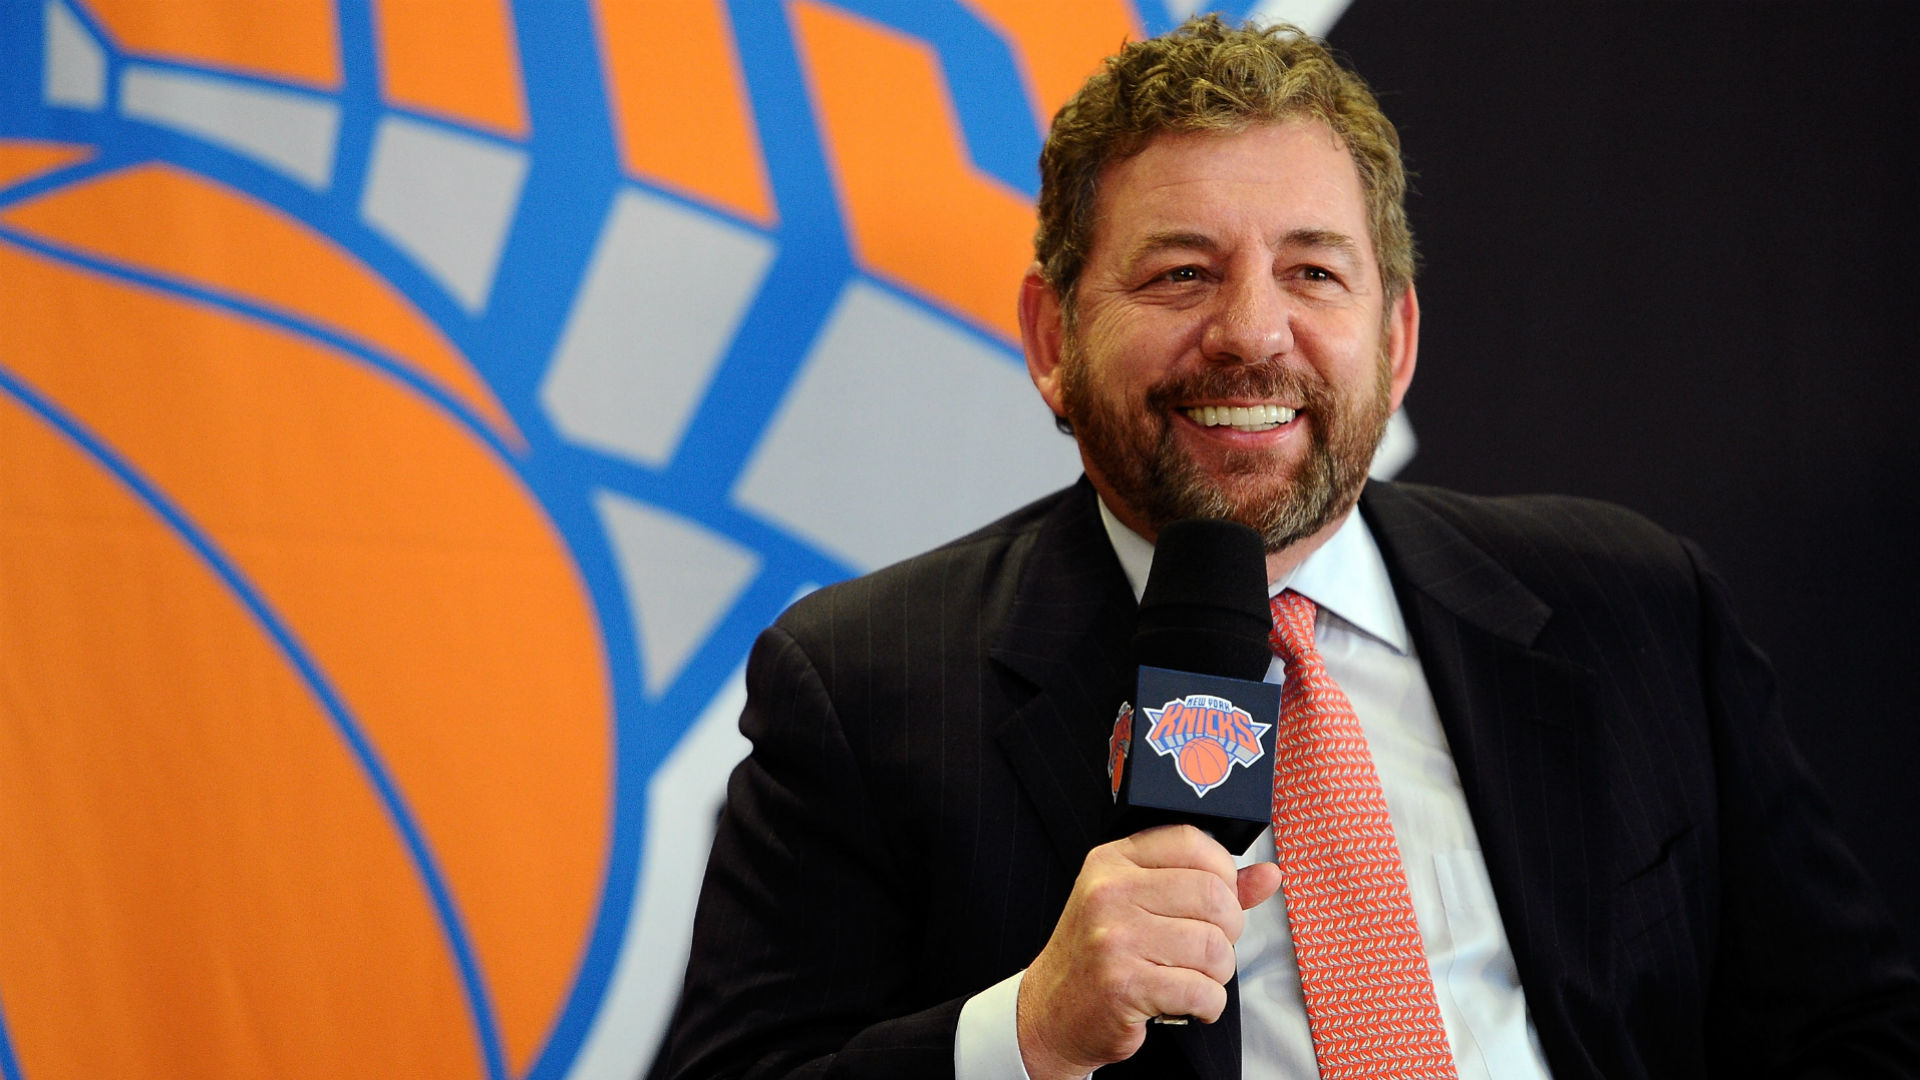 Are the Knicks for sale? Depends on the offer, says owner James Dolan